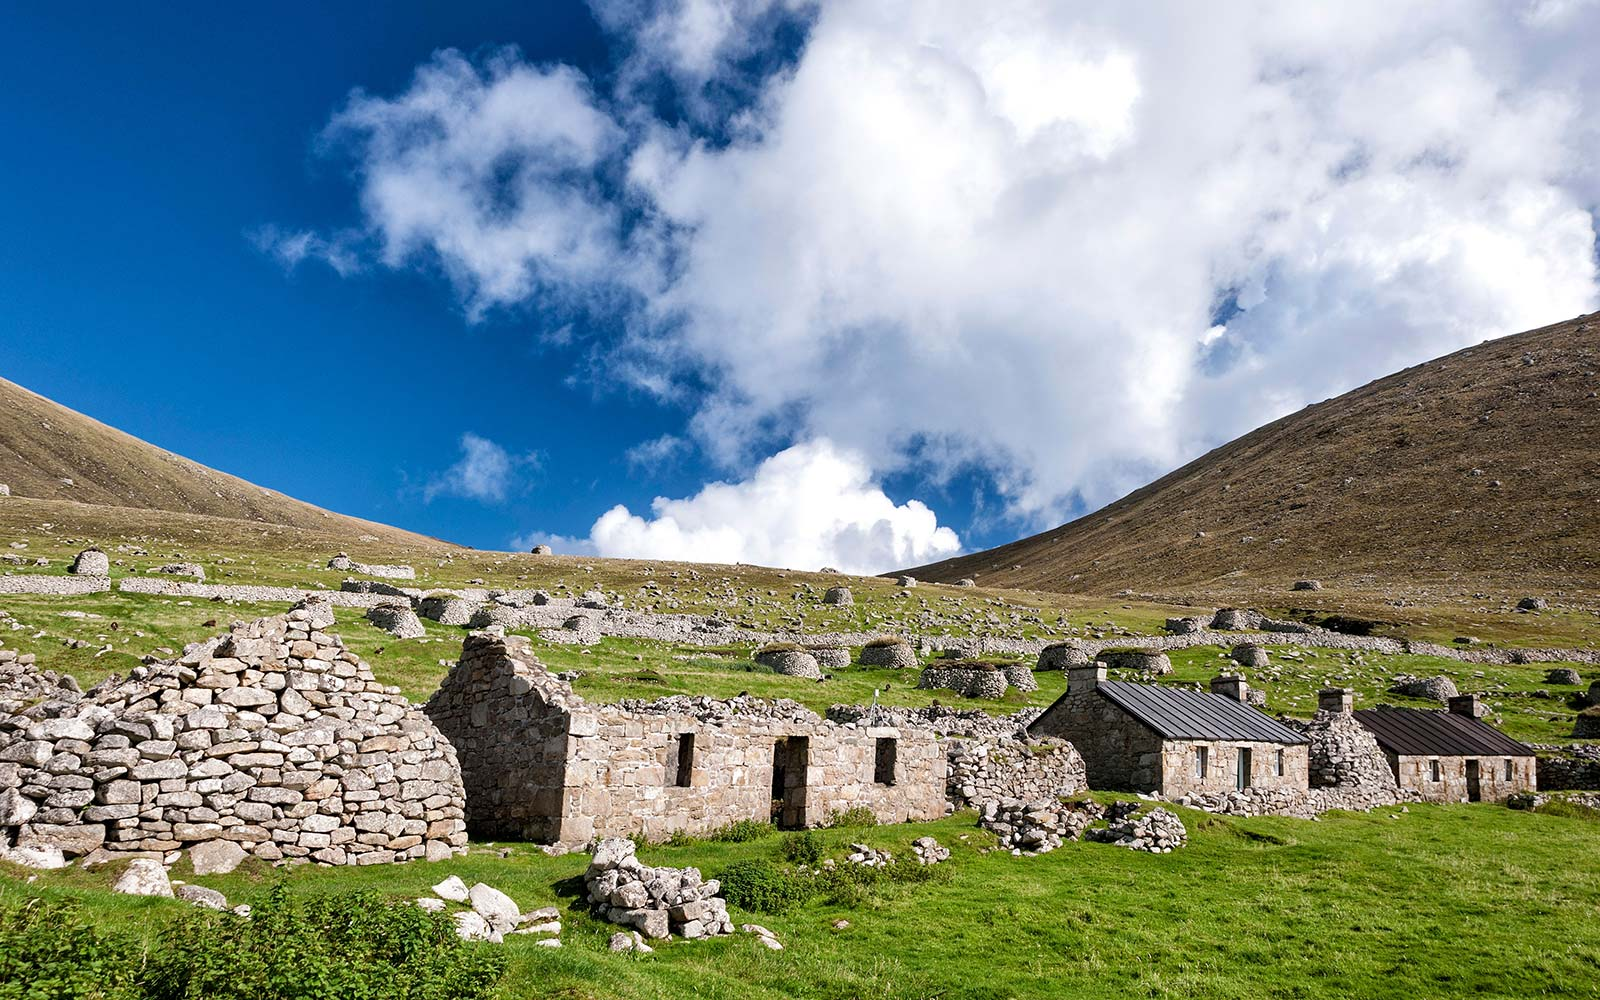 A view of Main Street, Village Bay, St. Kilda, showing both the ancient and newer blackhouses Scotland